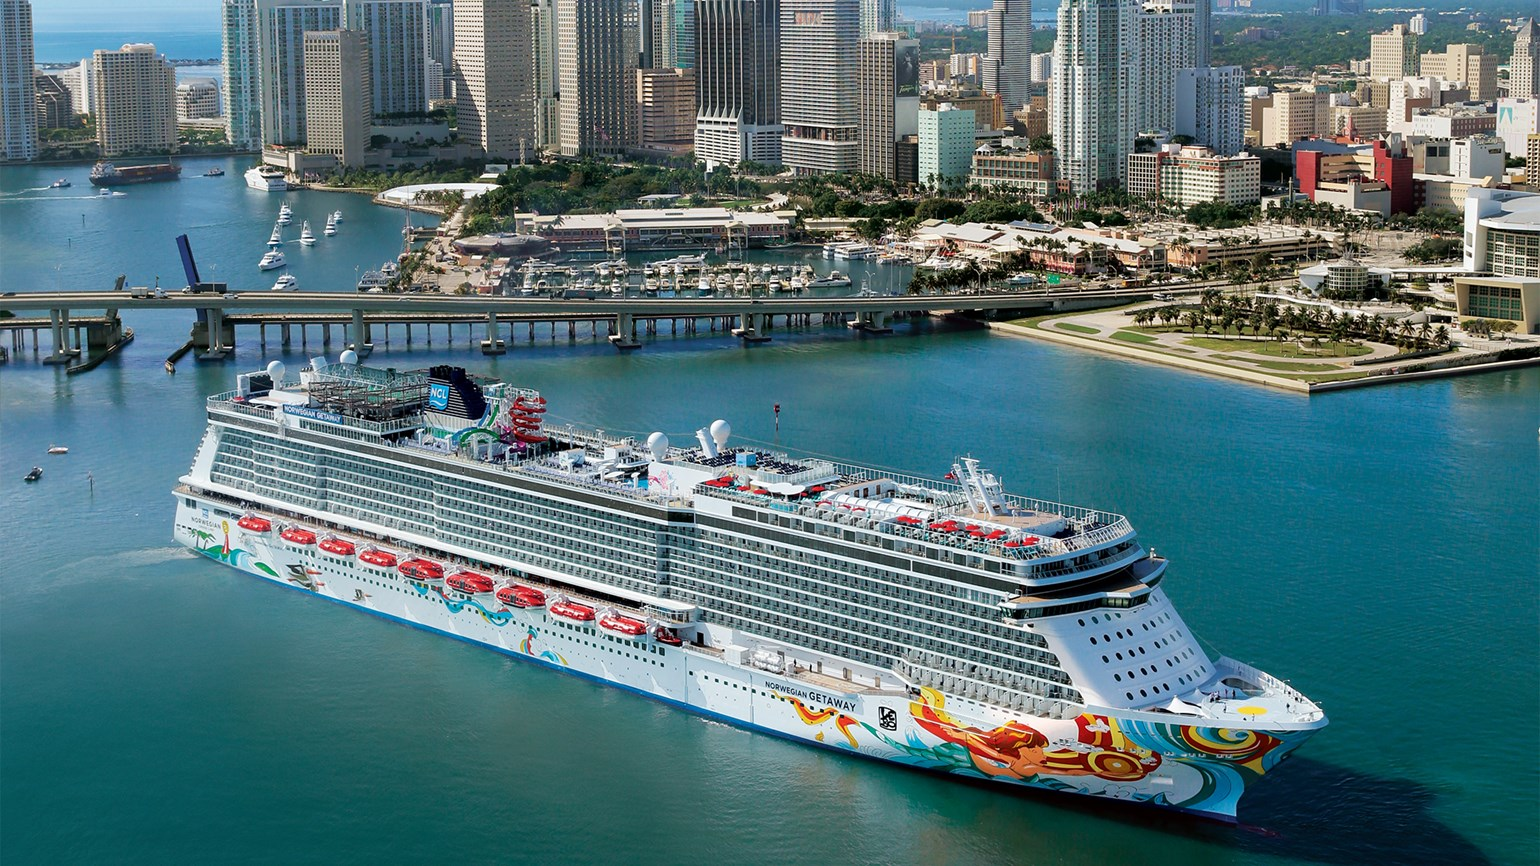 NCL to pay commission on future cruise credits, raise gratuities